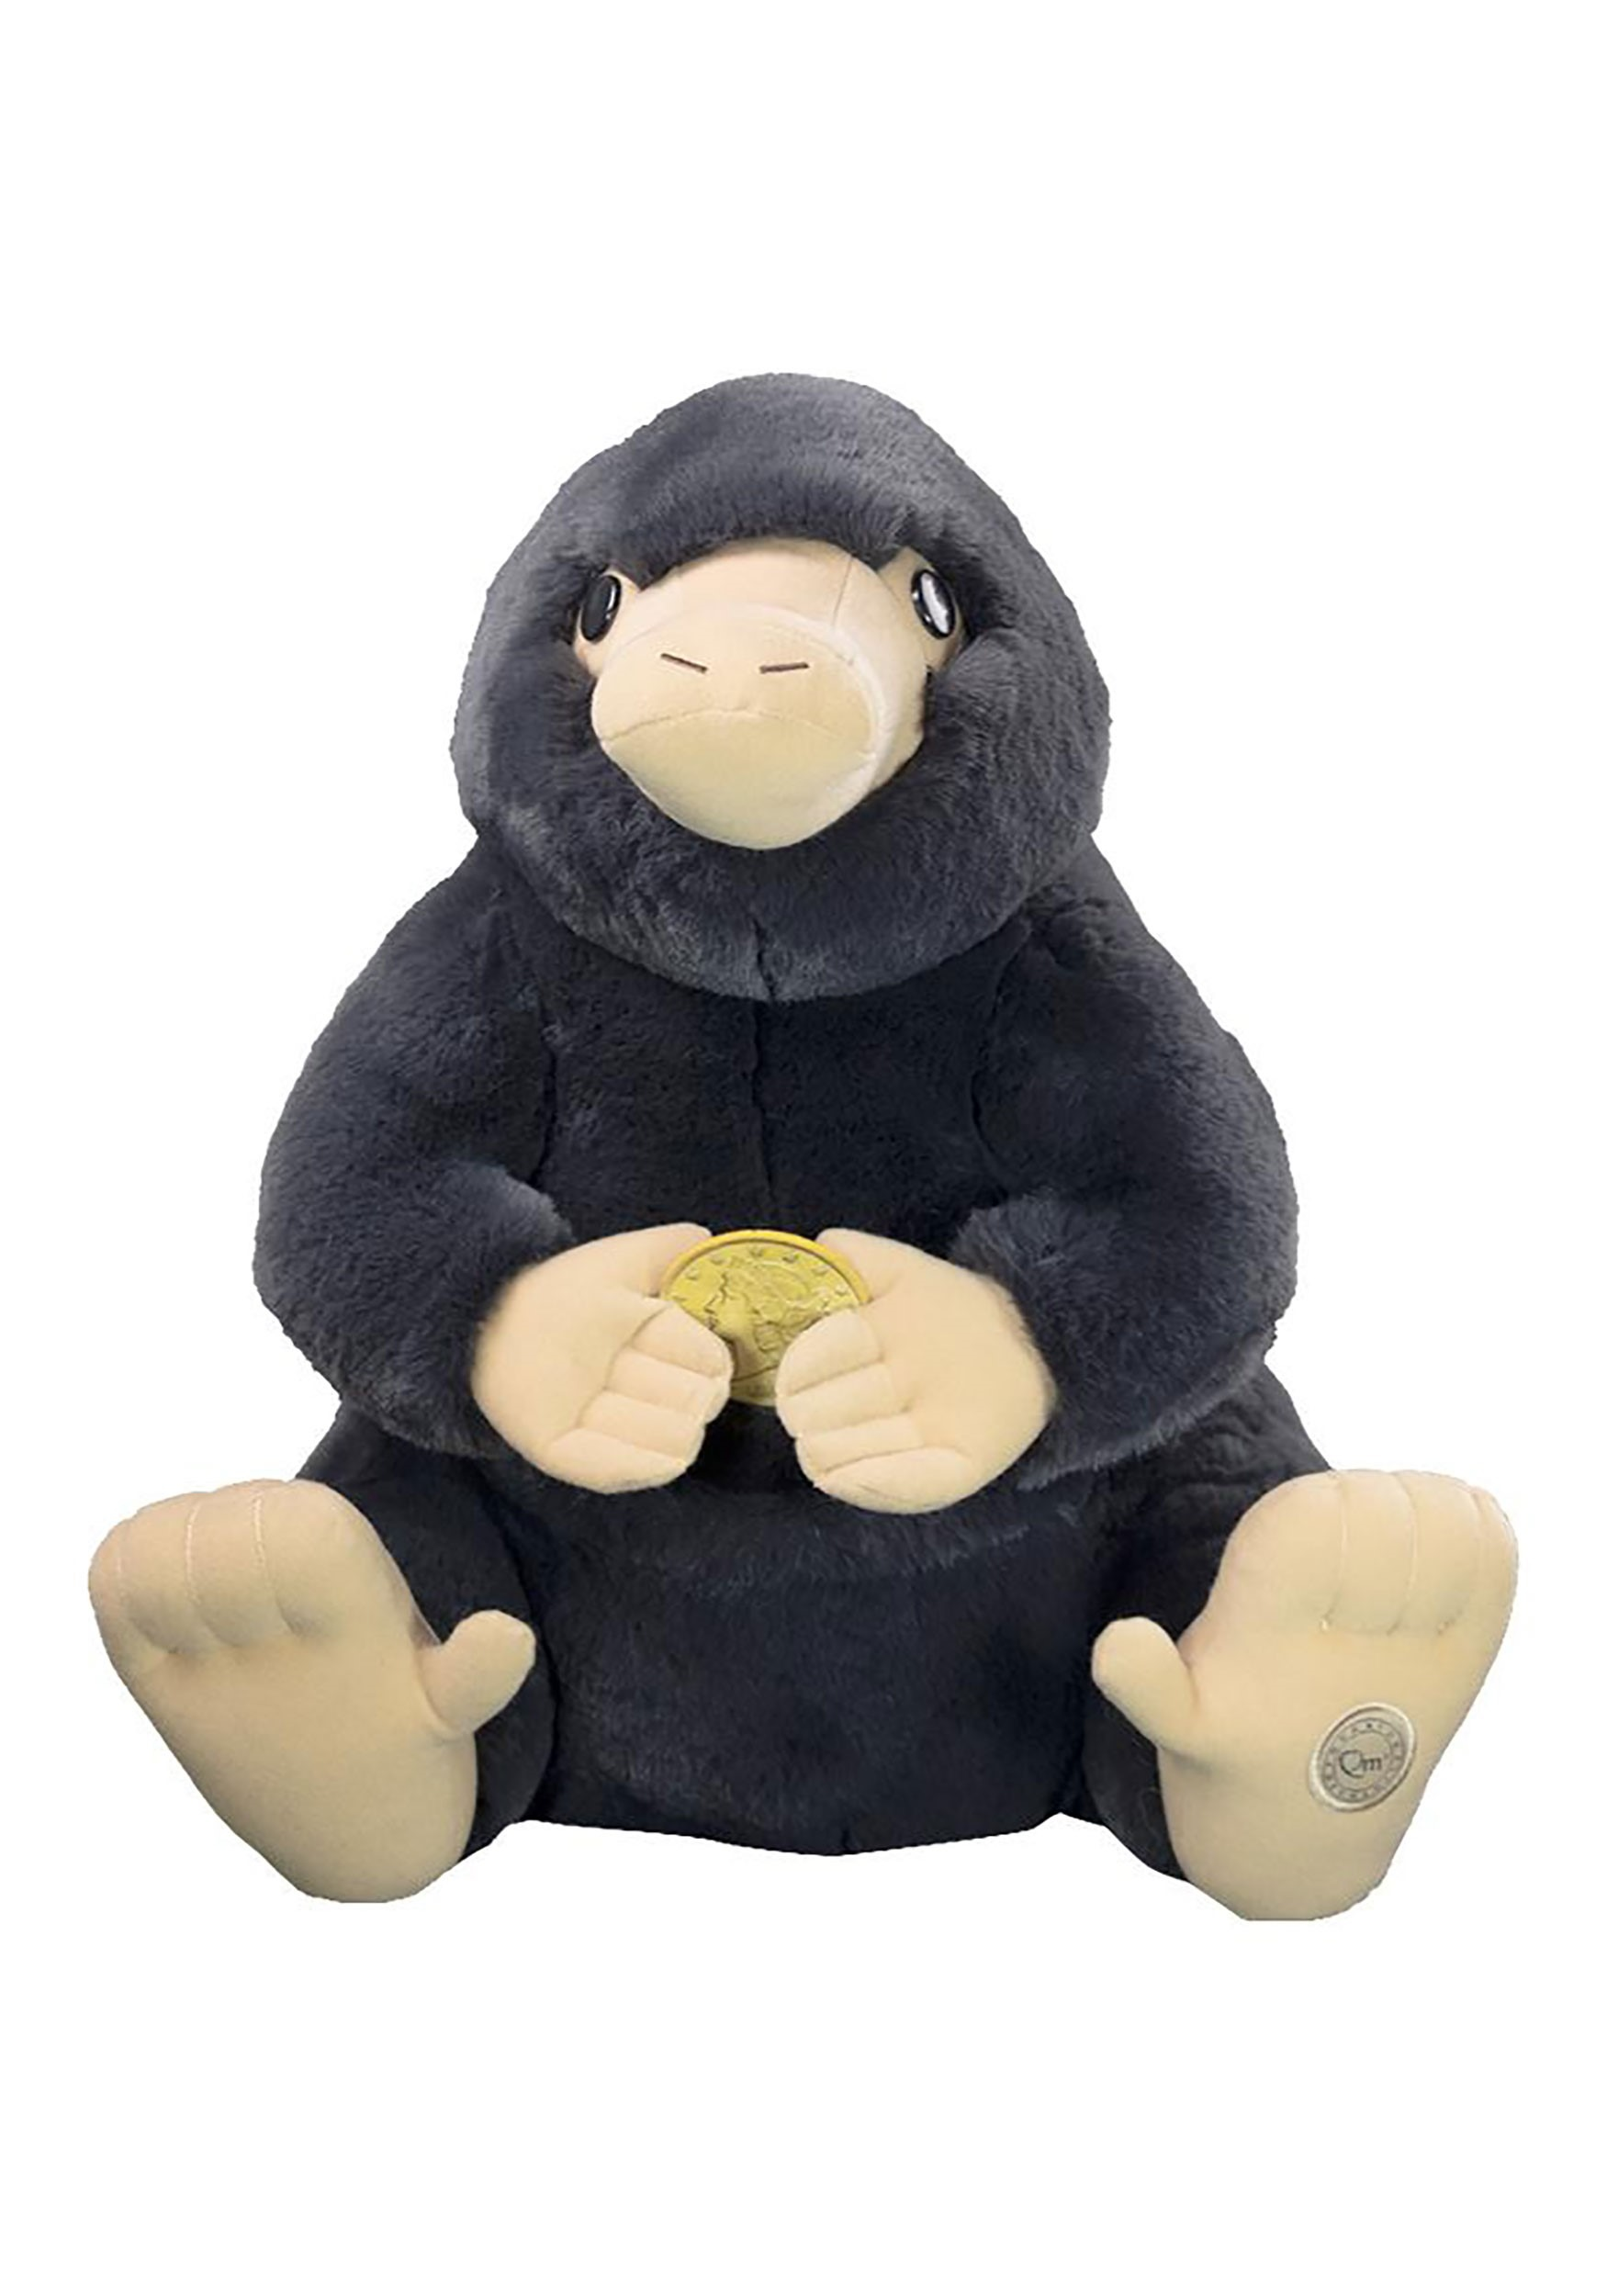 Stuffed Giant Niffler - Fantastic Beasts and Where to Find Them